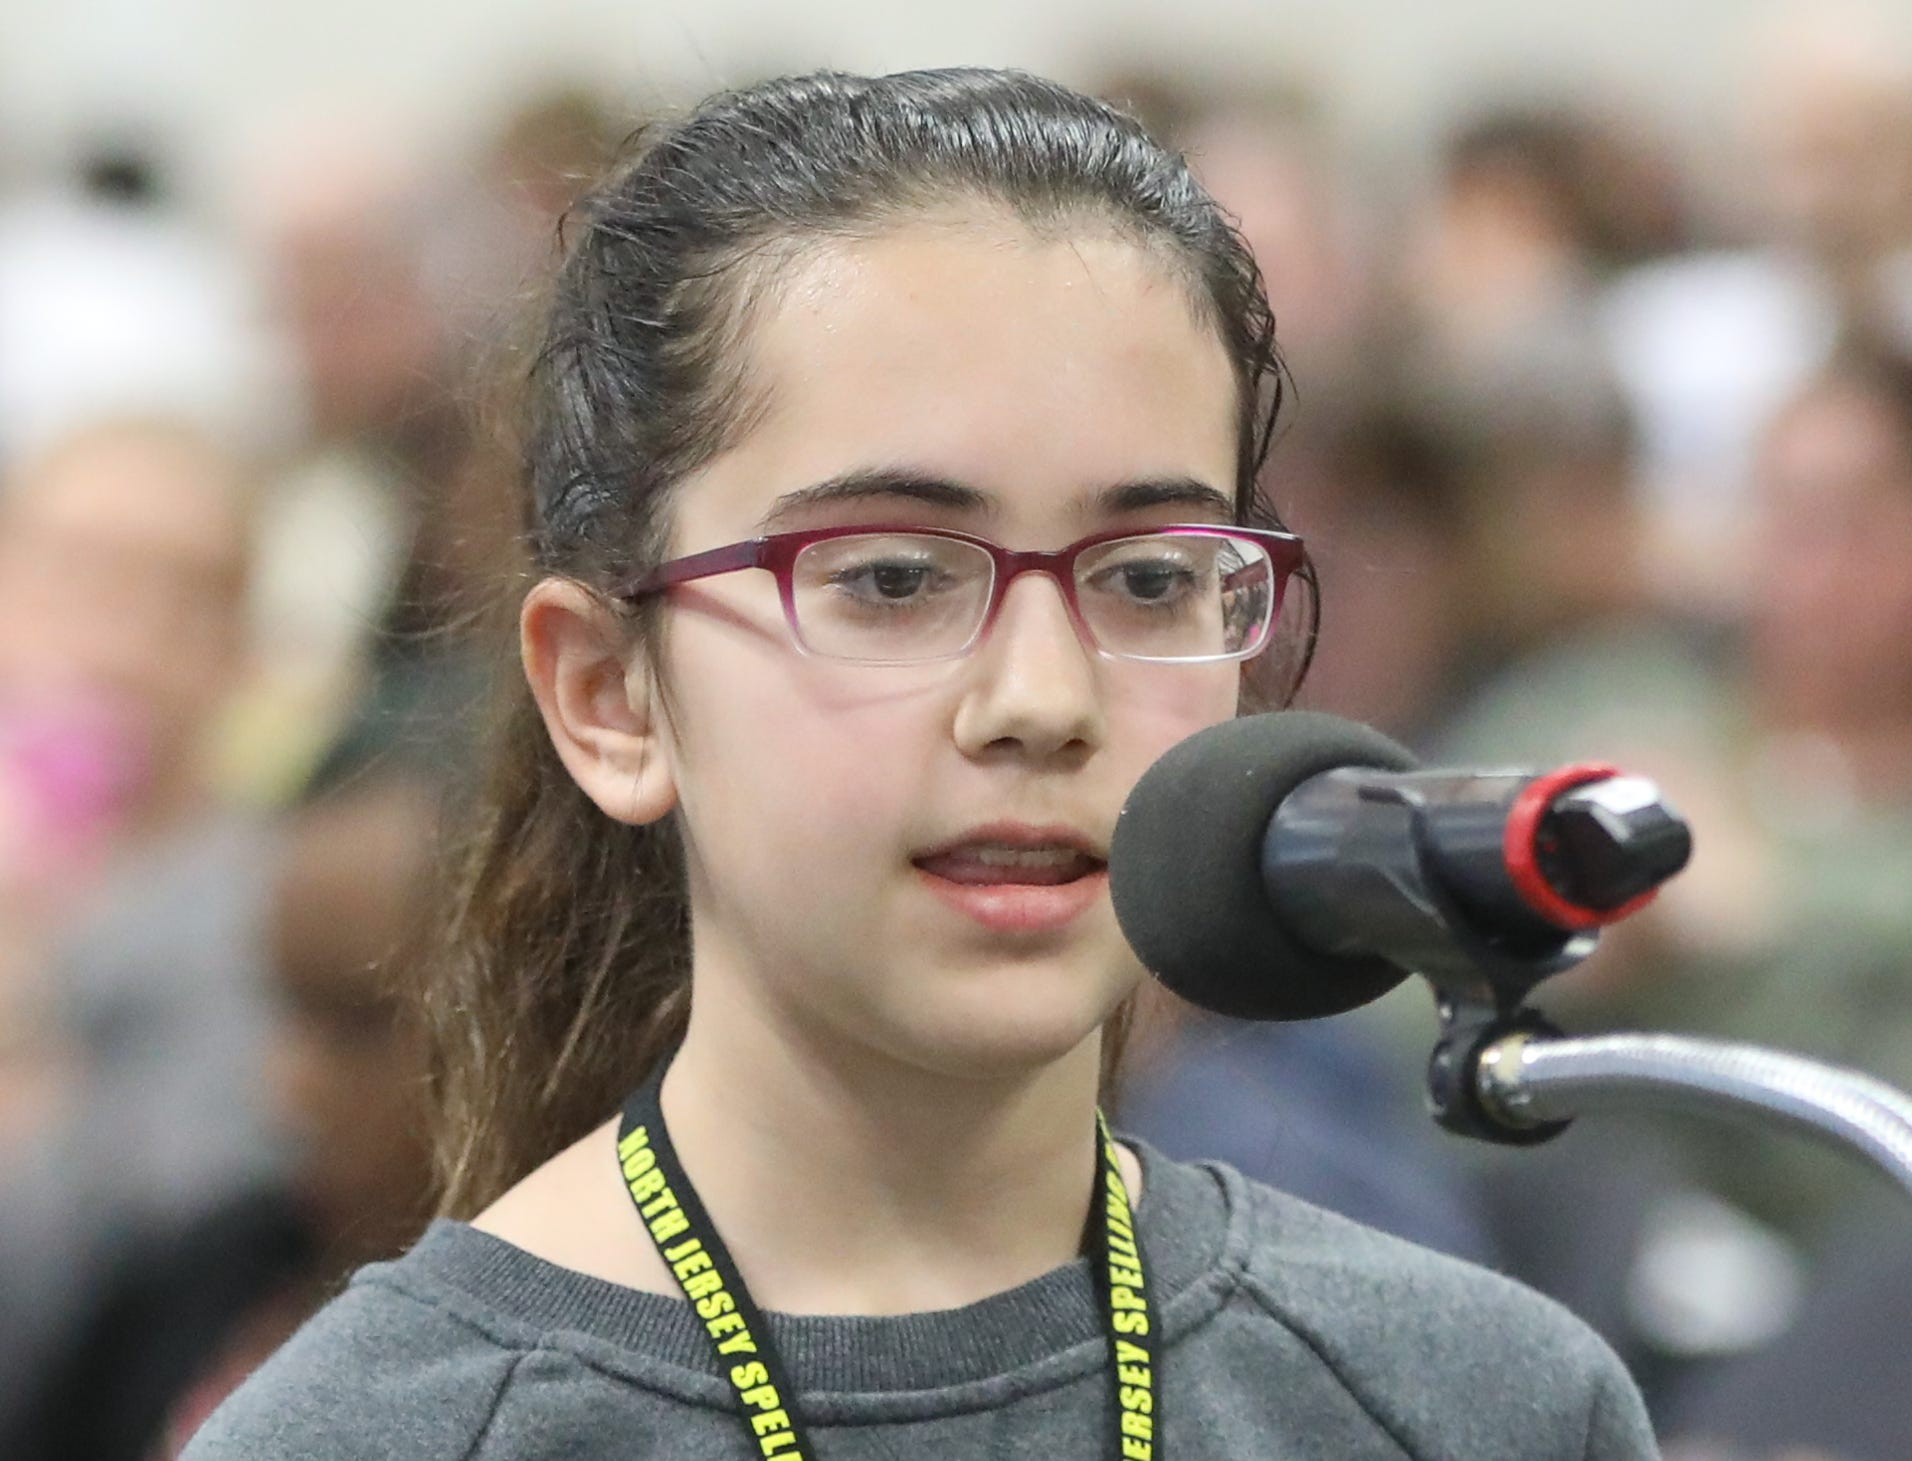 Naomi Zaider, of Paramus, competes in the first round of the 2019 North Jersey Spelling Bee, in Paramus. Thursday, March 14, 2019